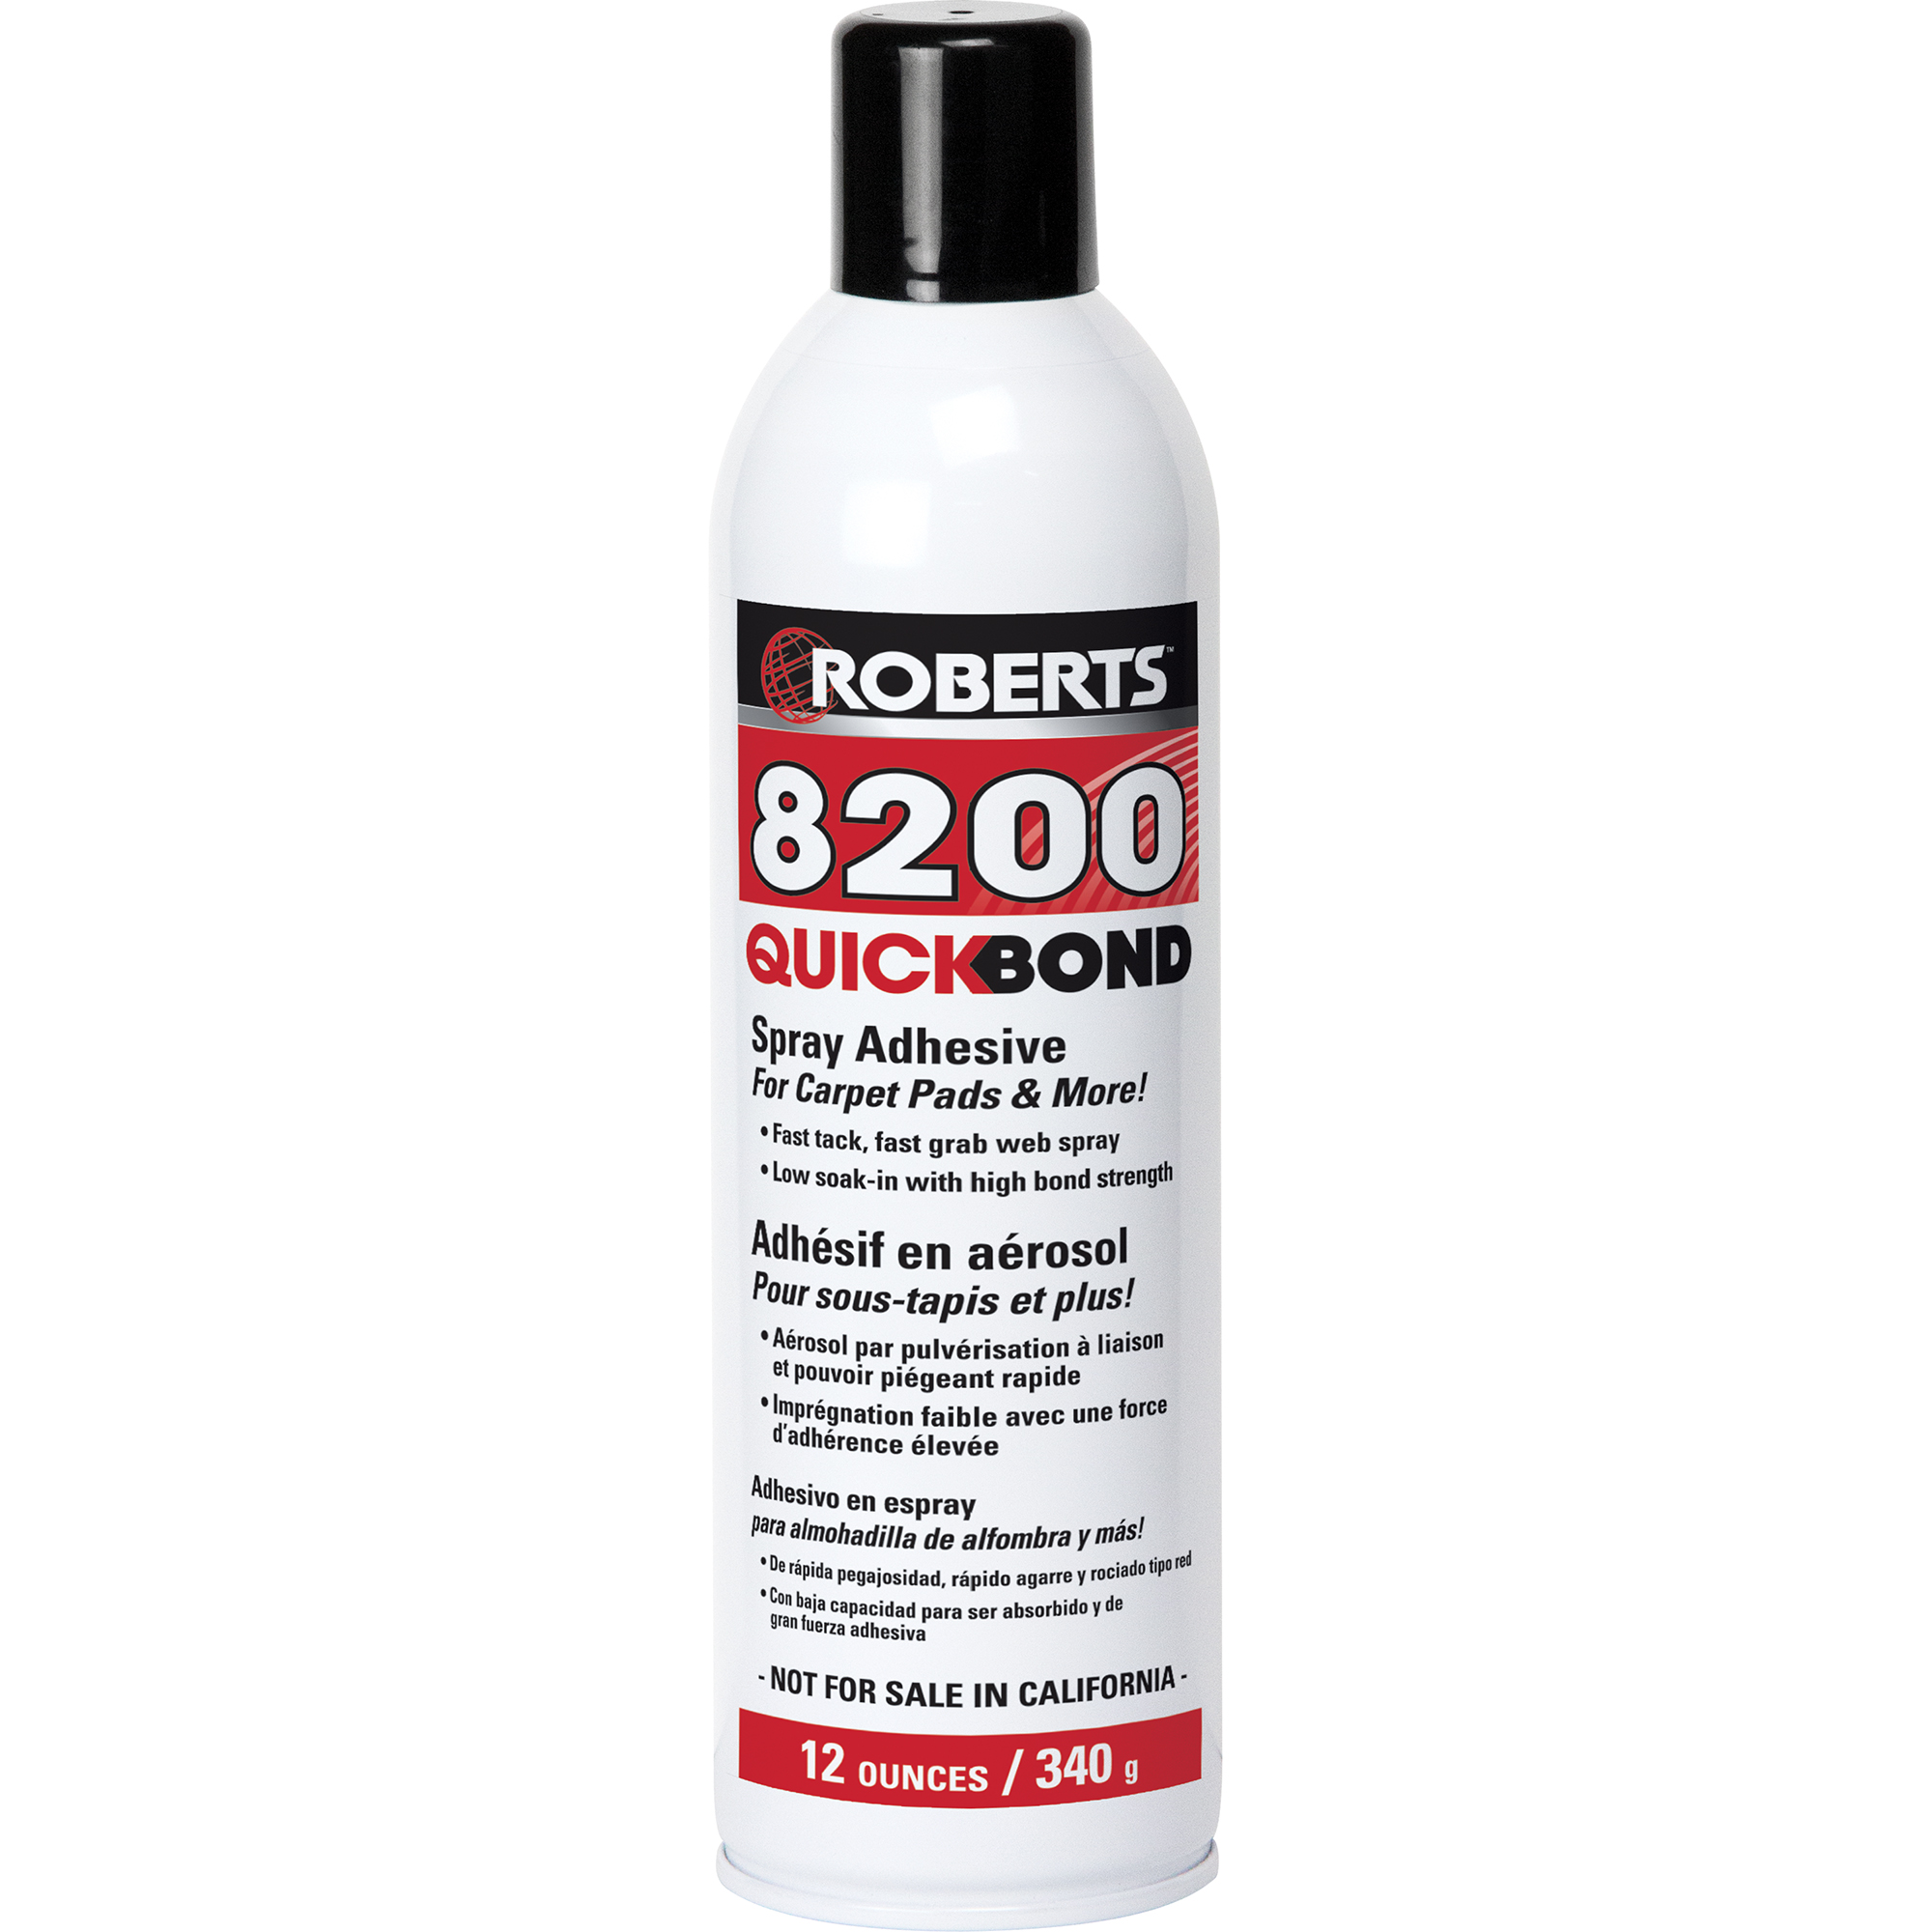 QUICK-BOND Spray Adhesive